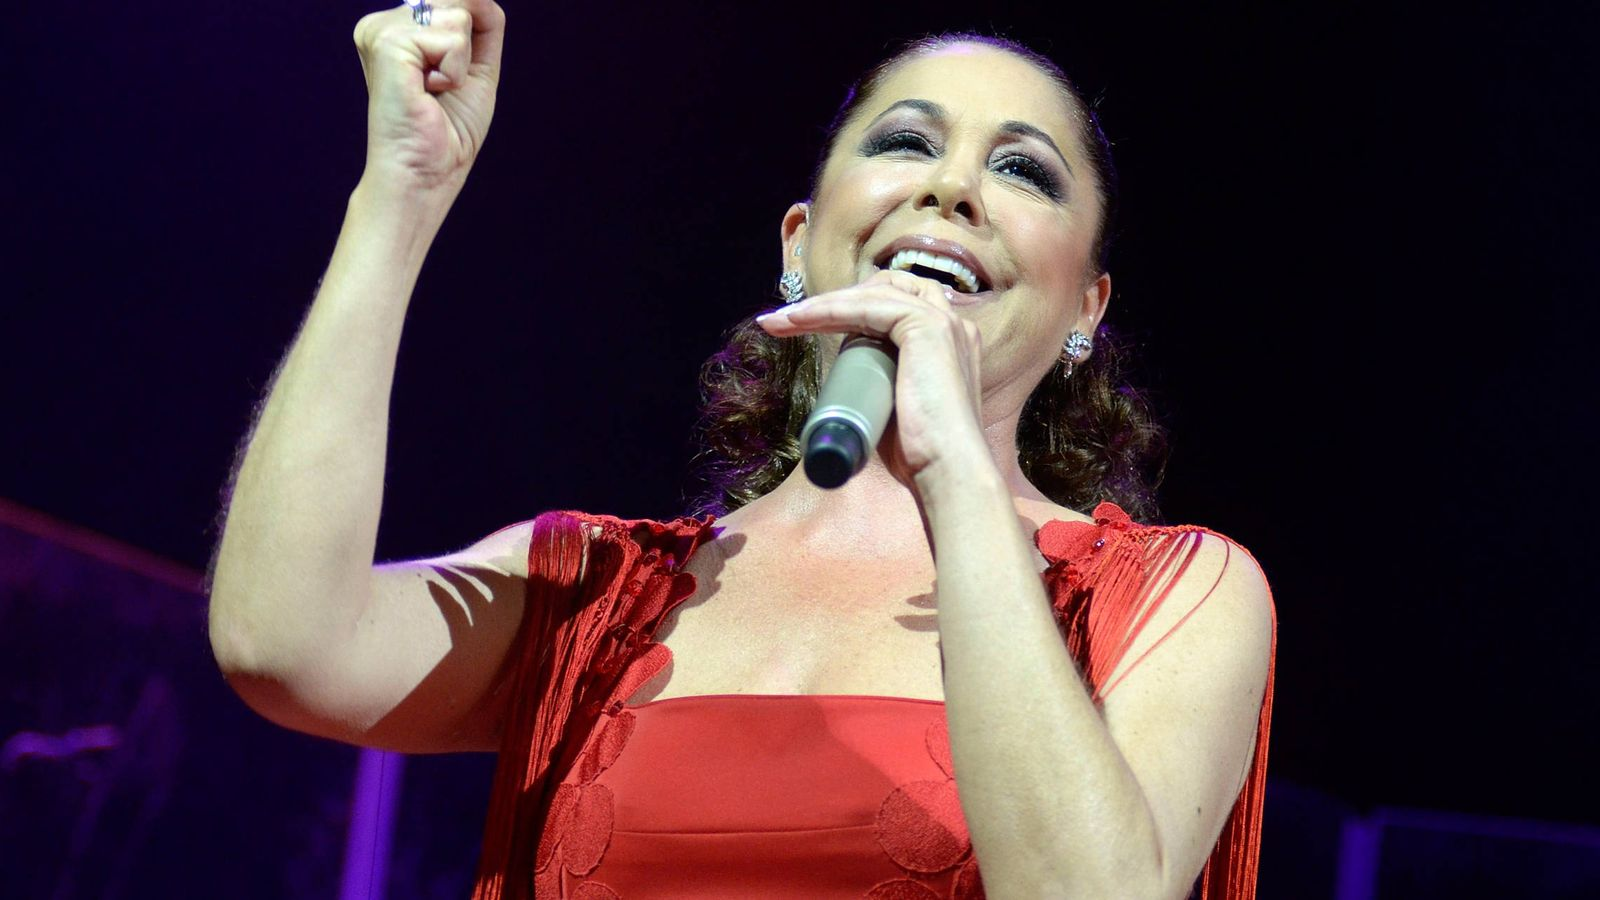 Foto: Isabel Pantoja, durante un concierto. (Getty)